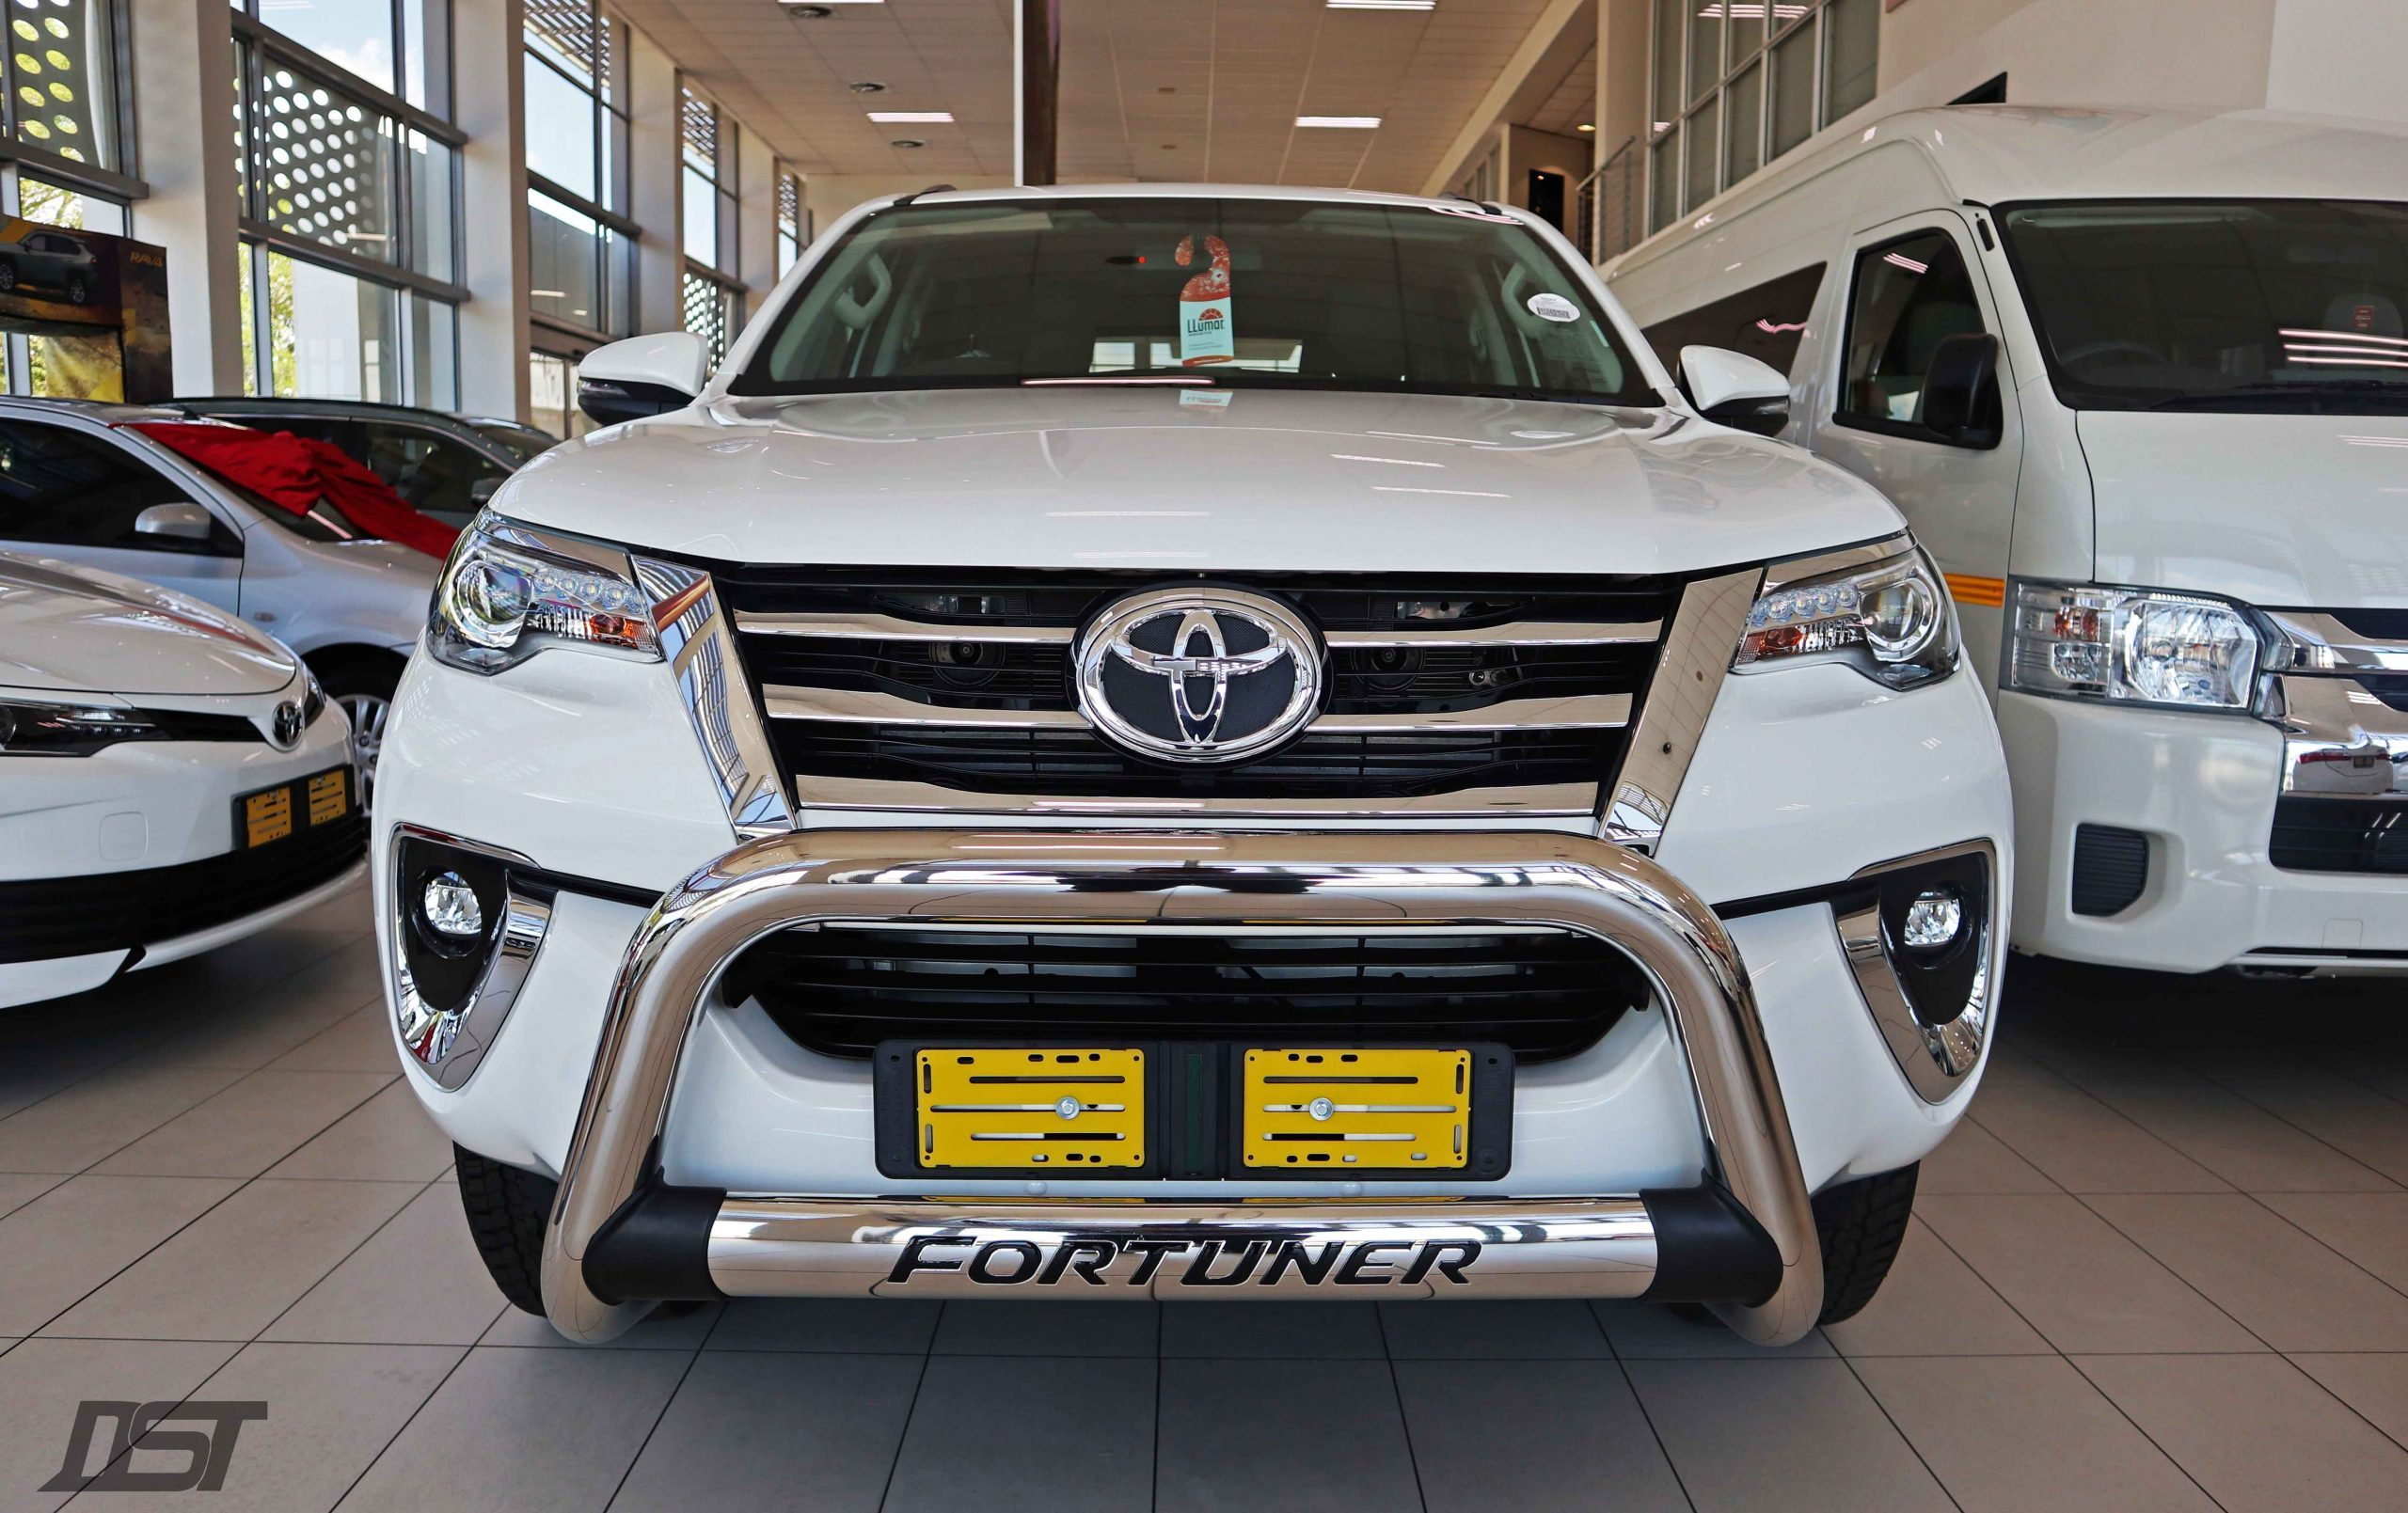 Toyota Fortuner 2.8 GD6 Fierce Edition front view